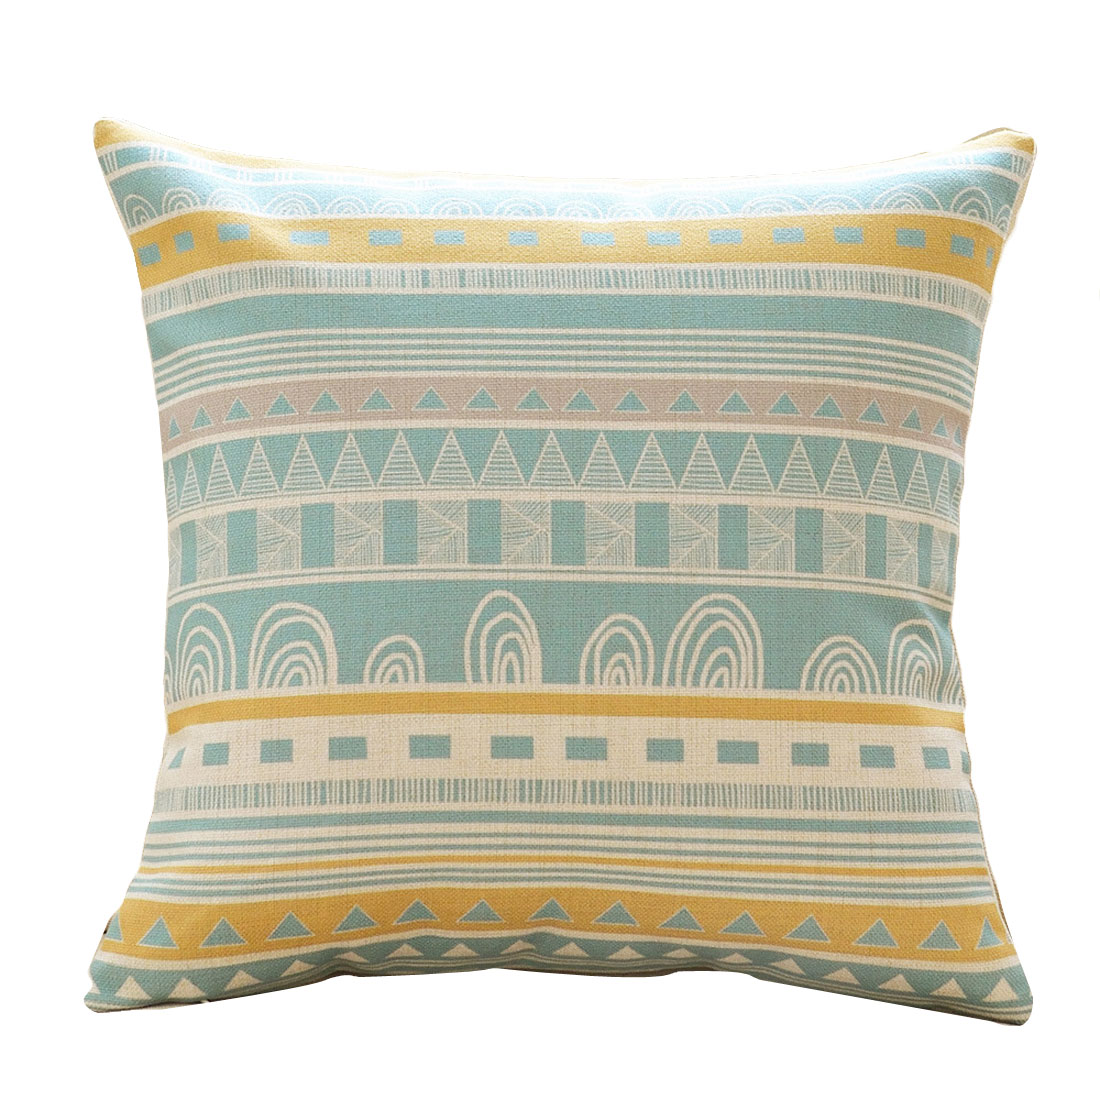 Sofa Cotton Linen Geometric Pattern Single Side Retro Style Pillow Cover Decor